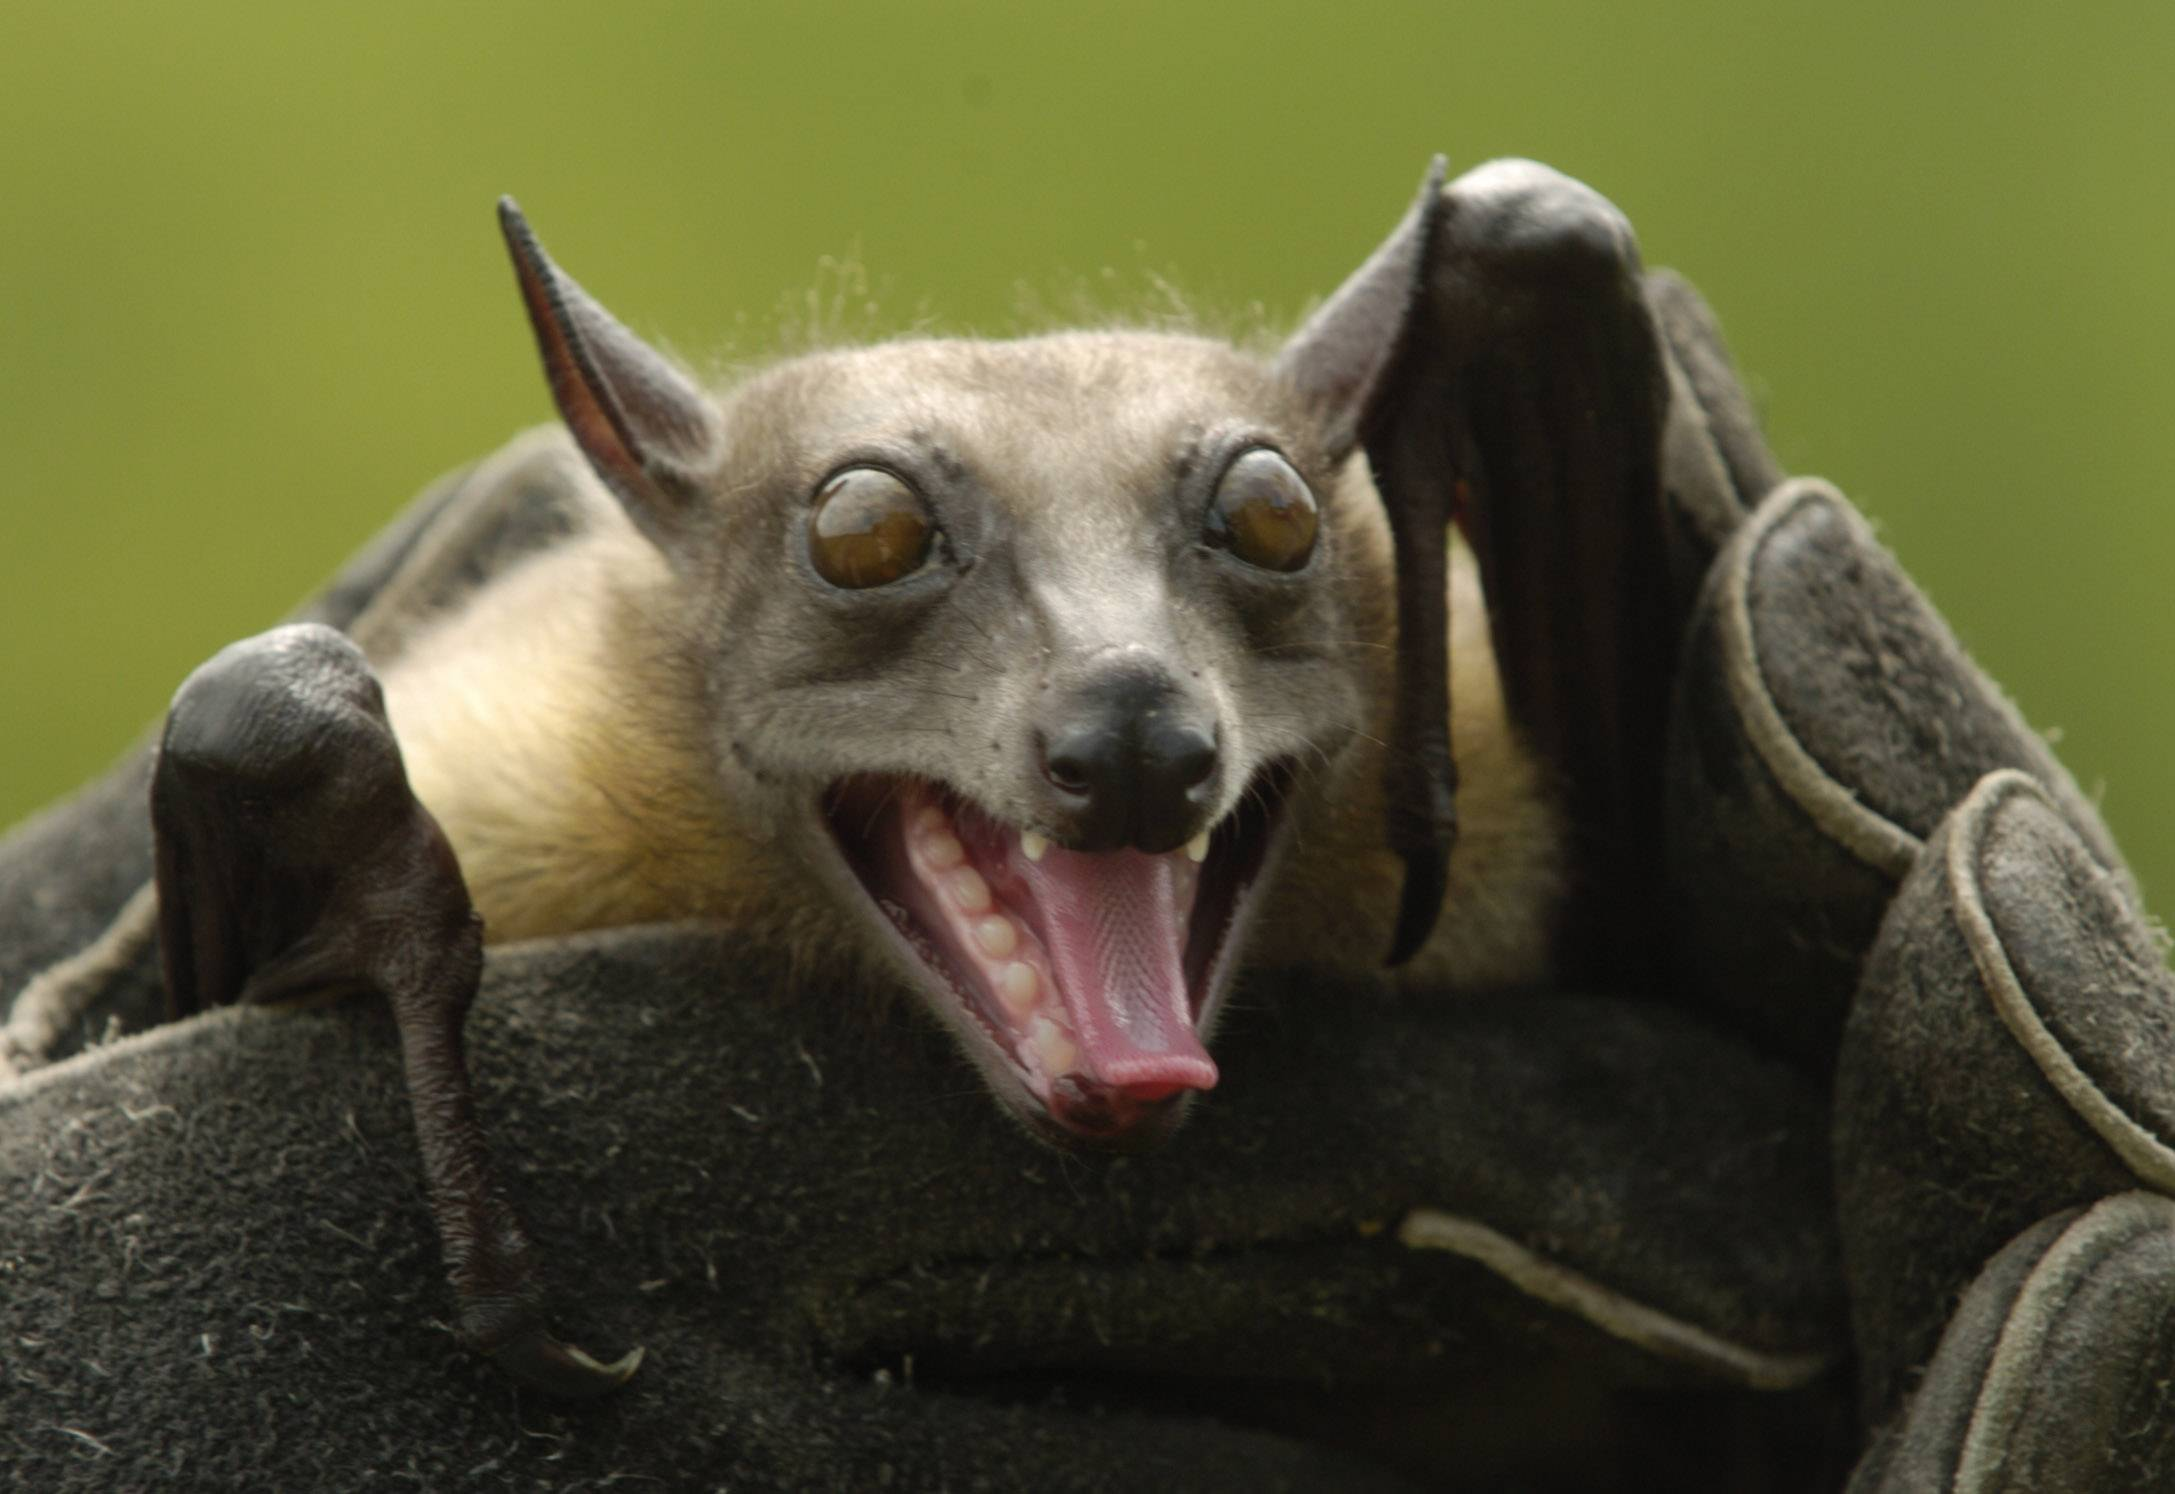 learn about bats oct  31 in waukegan